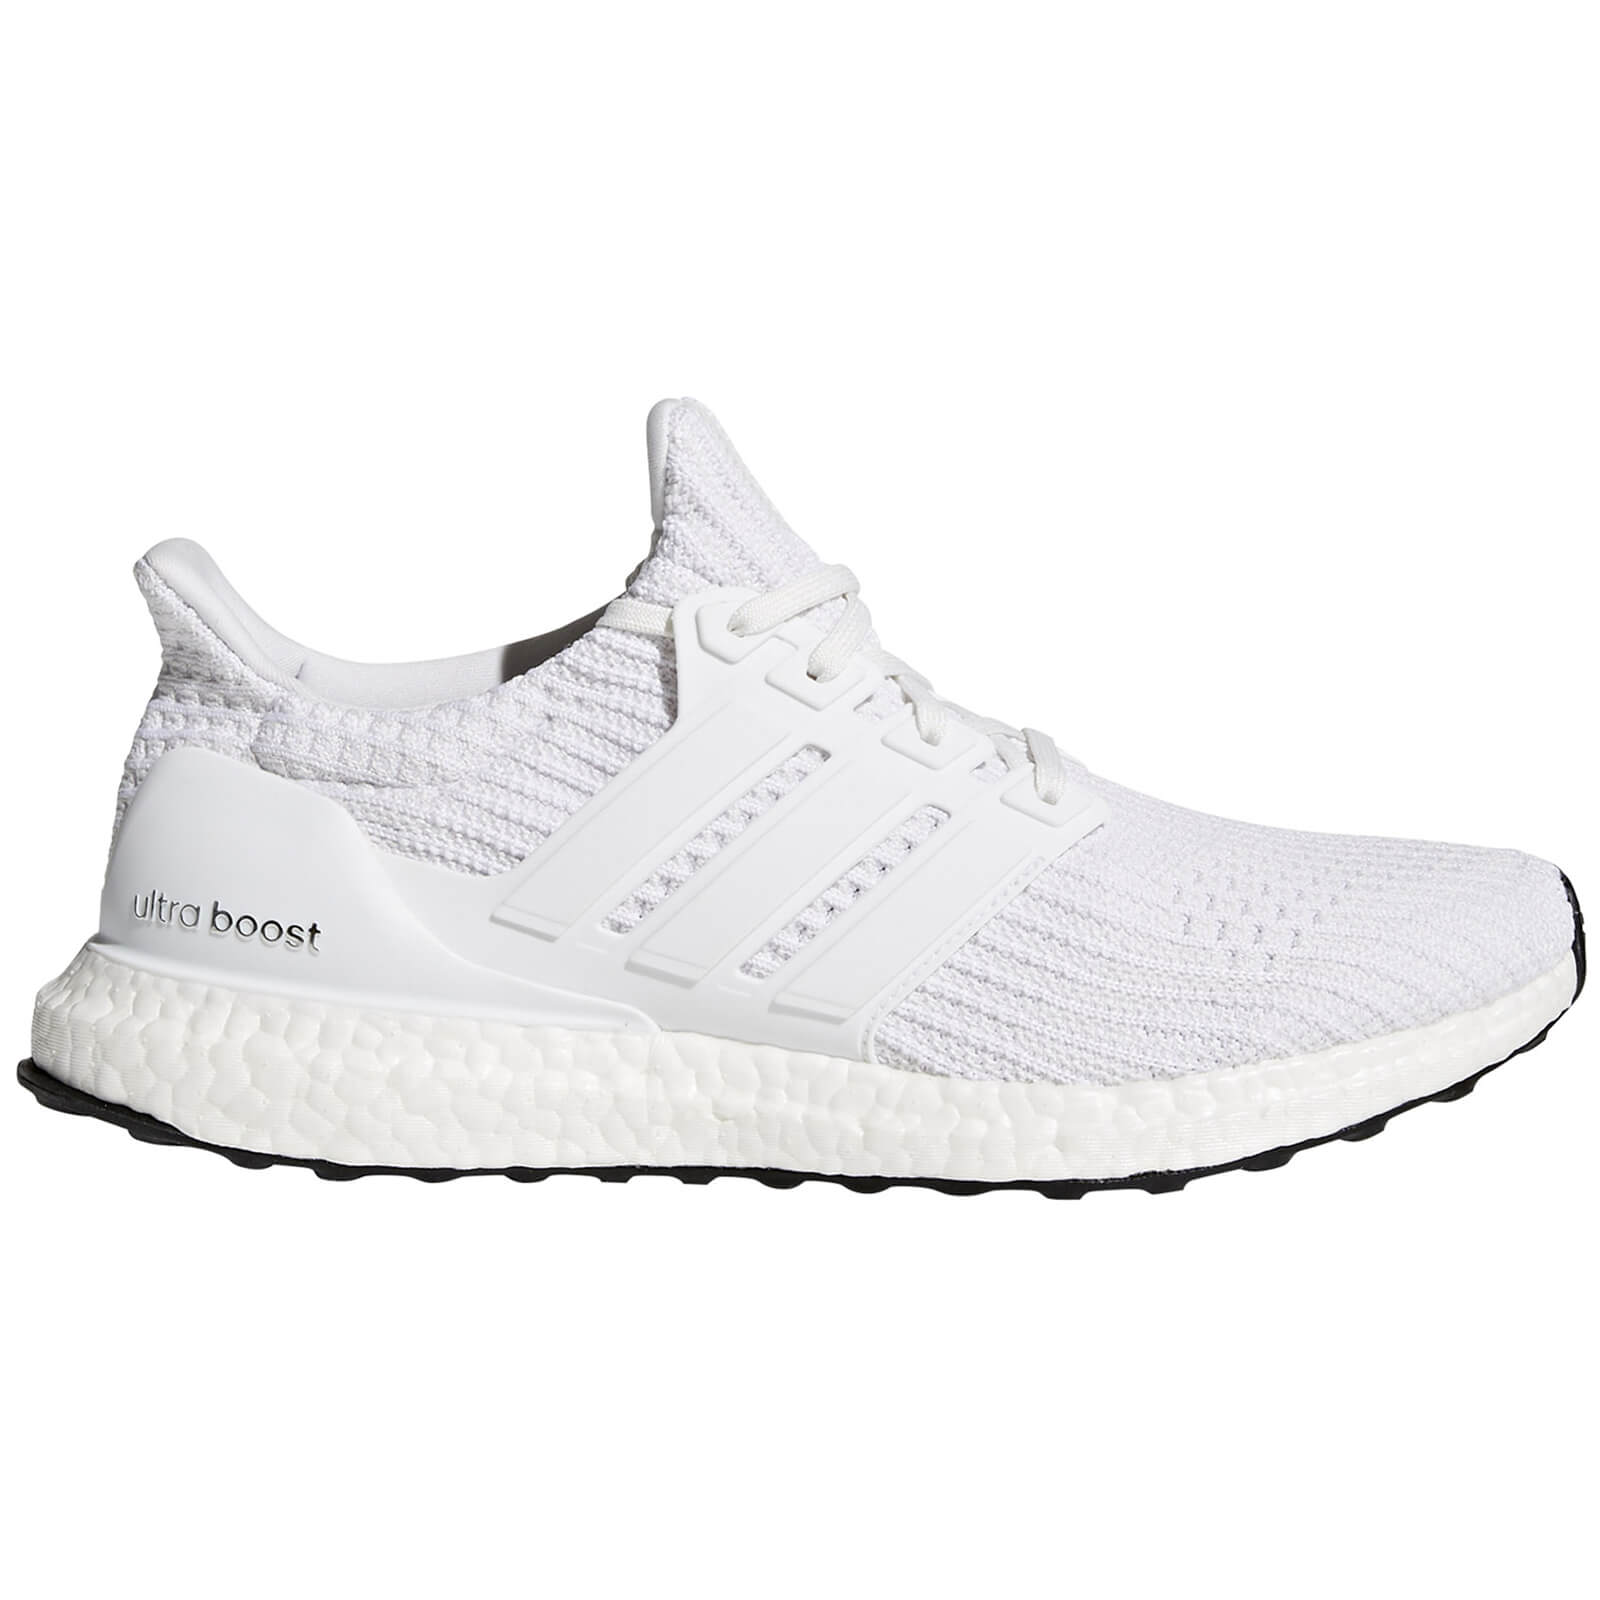 720d2fd085143 adidas Ultra Boost Running Shoes - White